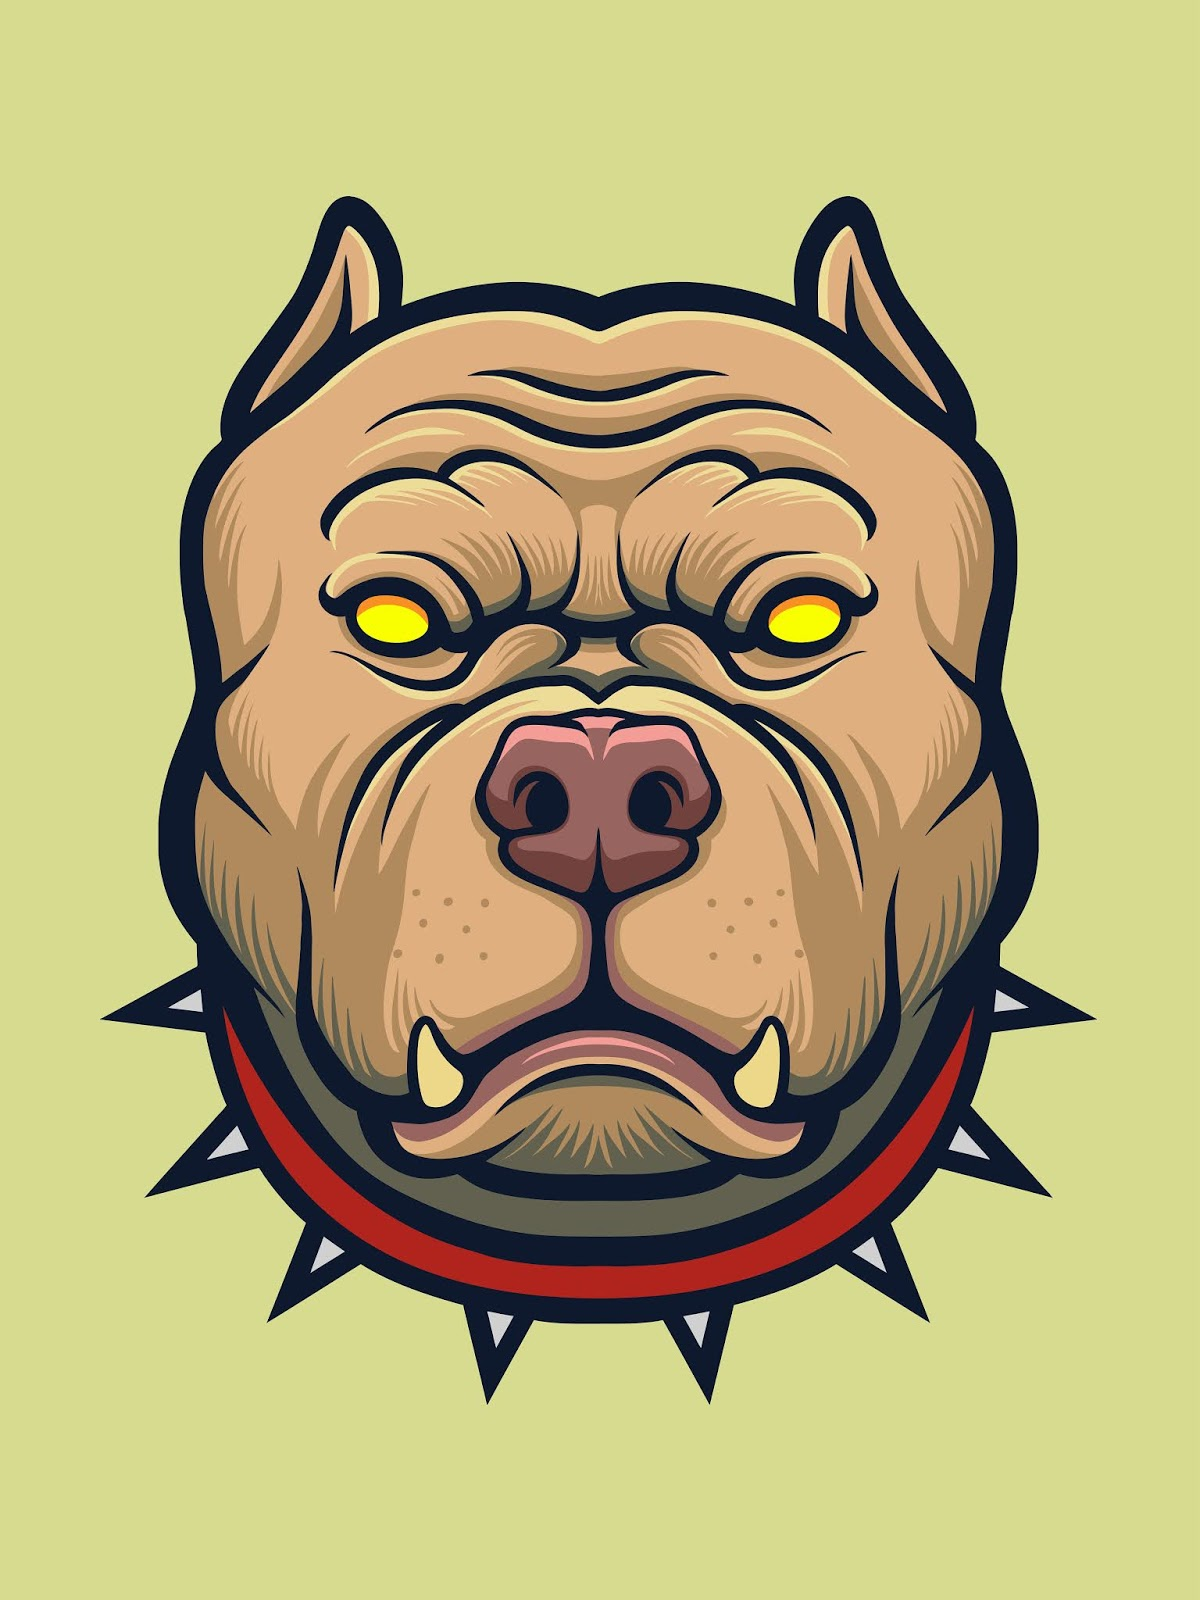 Angry Pitbull Dog Free Download Vector CDR, AI, EPS and PNG Formats